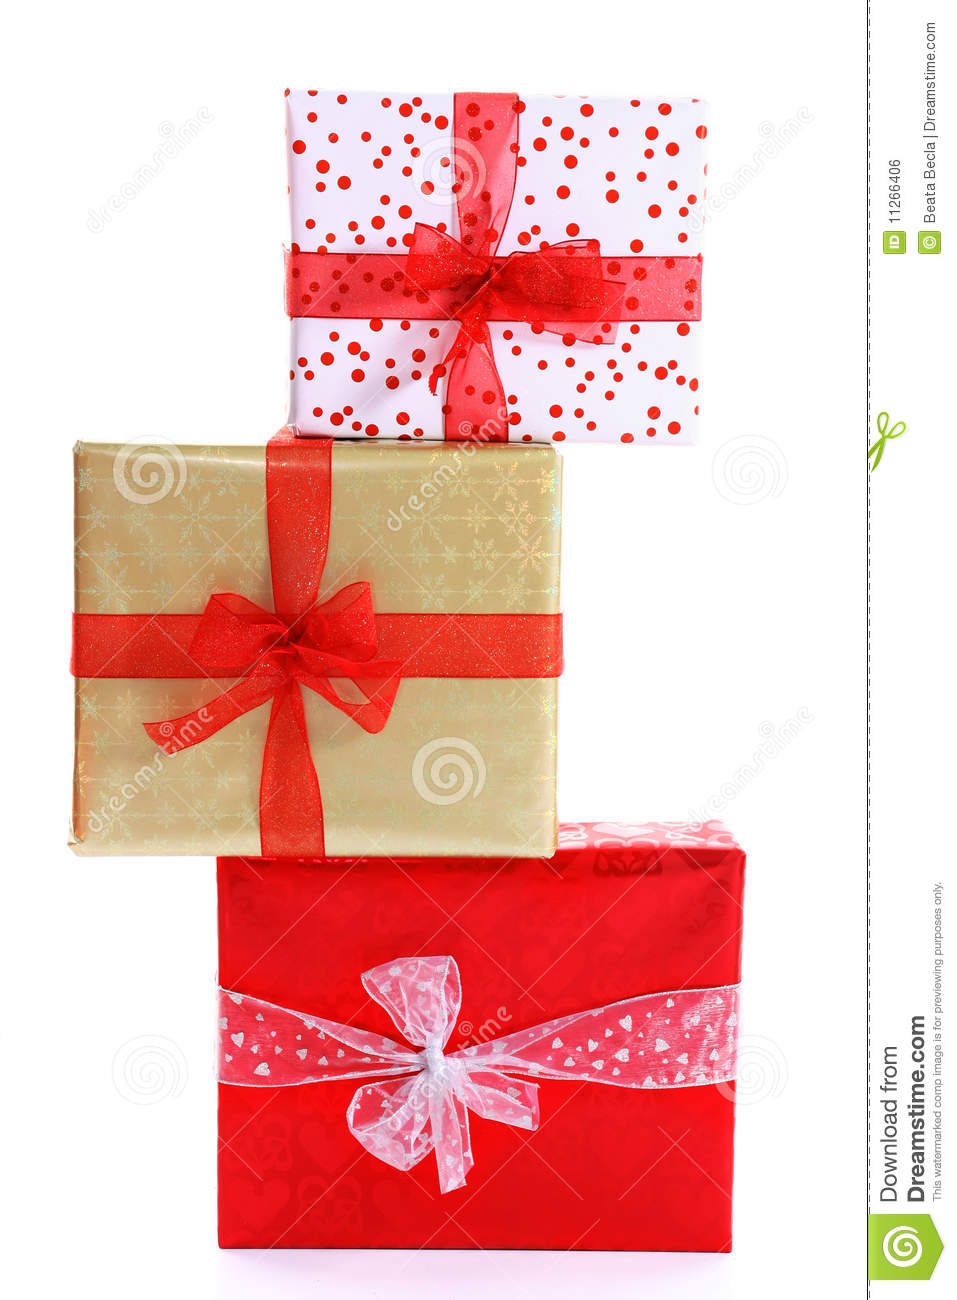 Gift stack royalty free stock image